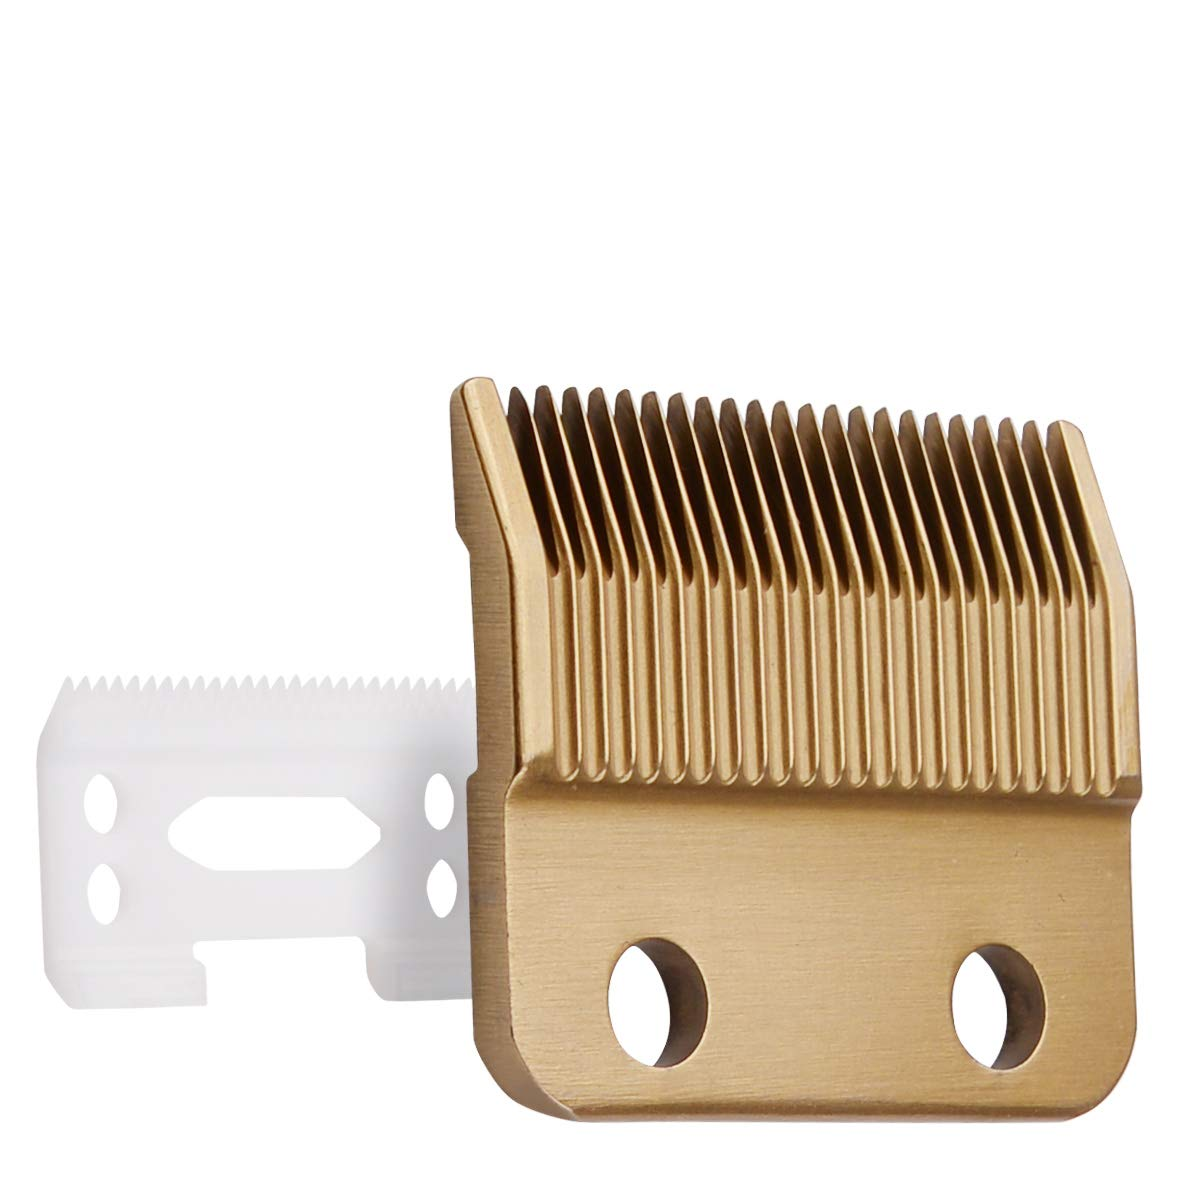 Cosyonall Professional Animal Standard Adjustable Replacement Blades #1037-400 -Designed for Wahl #30-15-10 Ceramic Blade Set,Gold